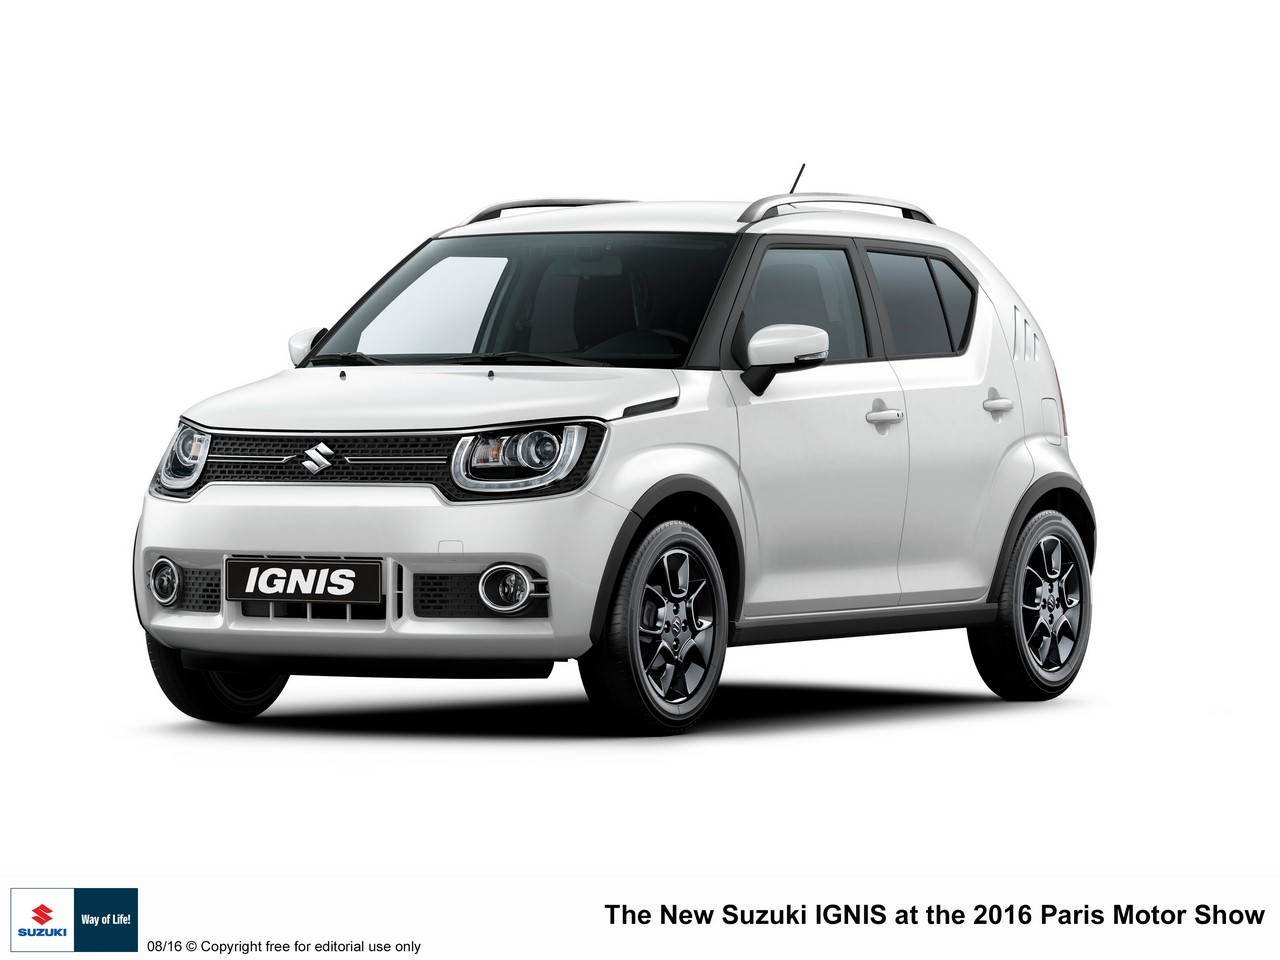 Euro-spec Suzuki Ignis front three quarters